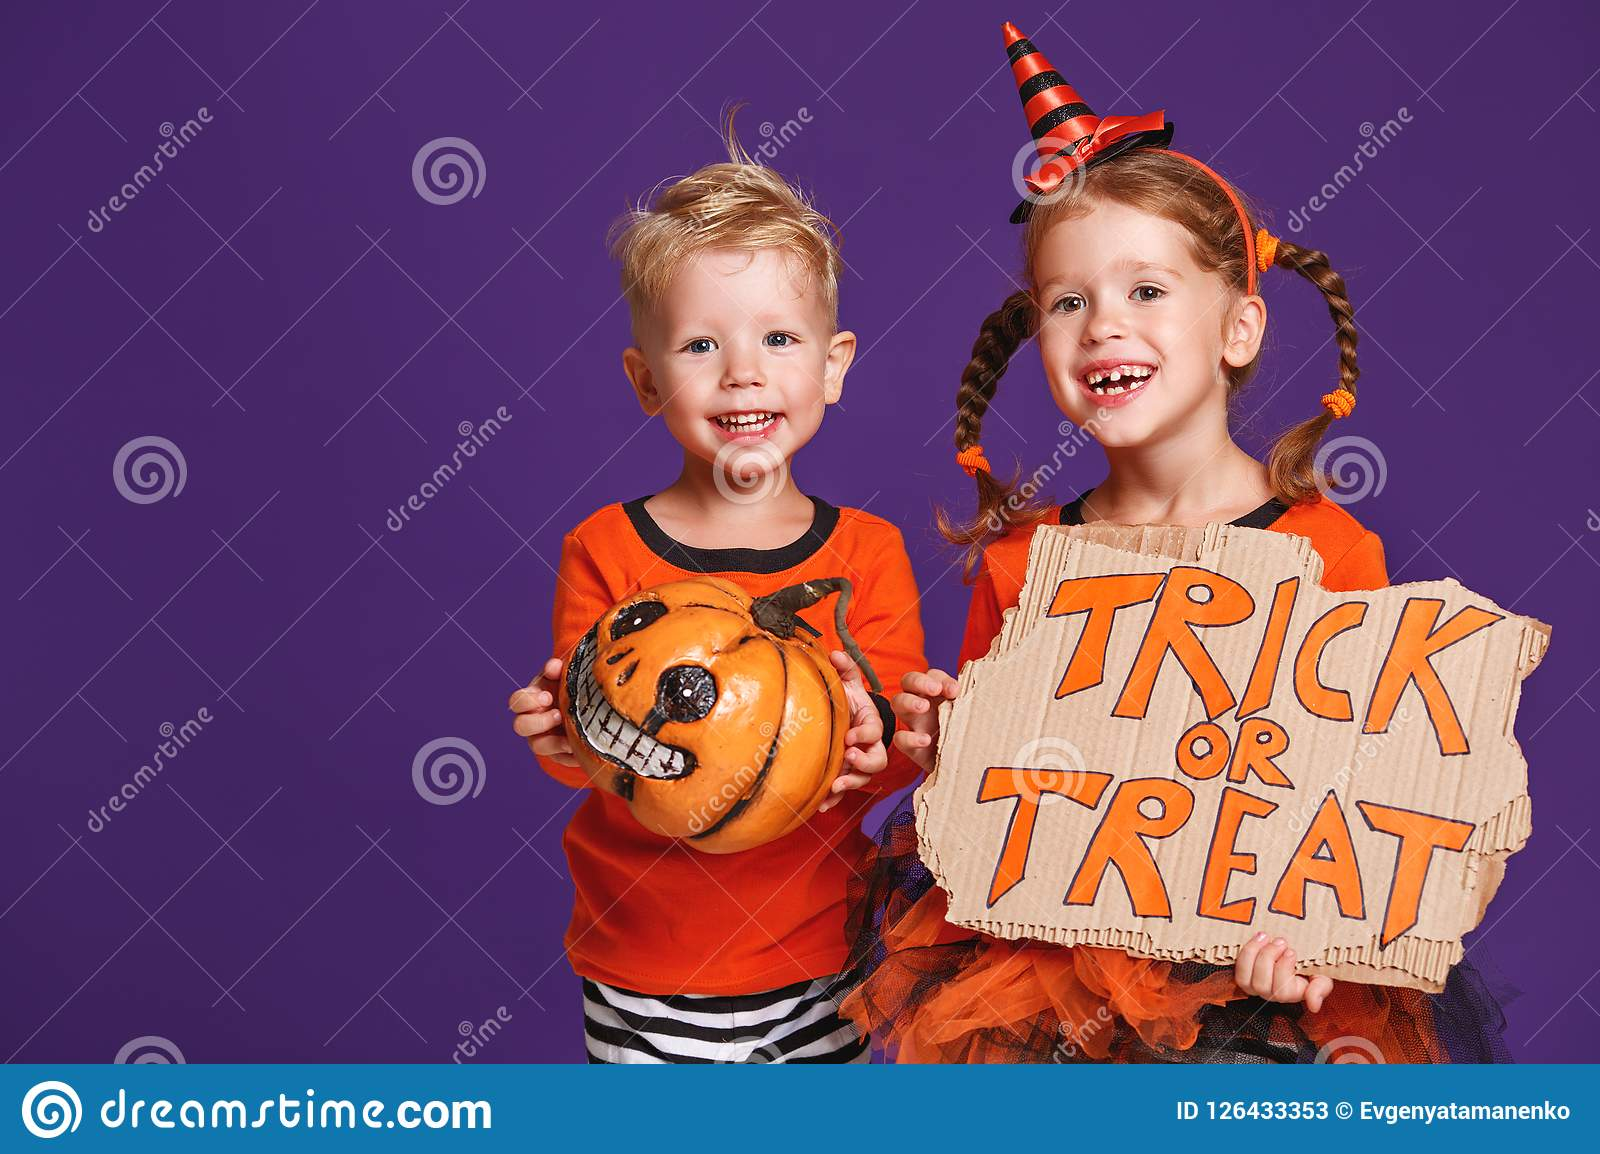 Happy Halloween! cheerful children in costume with pumpkins on v